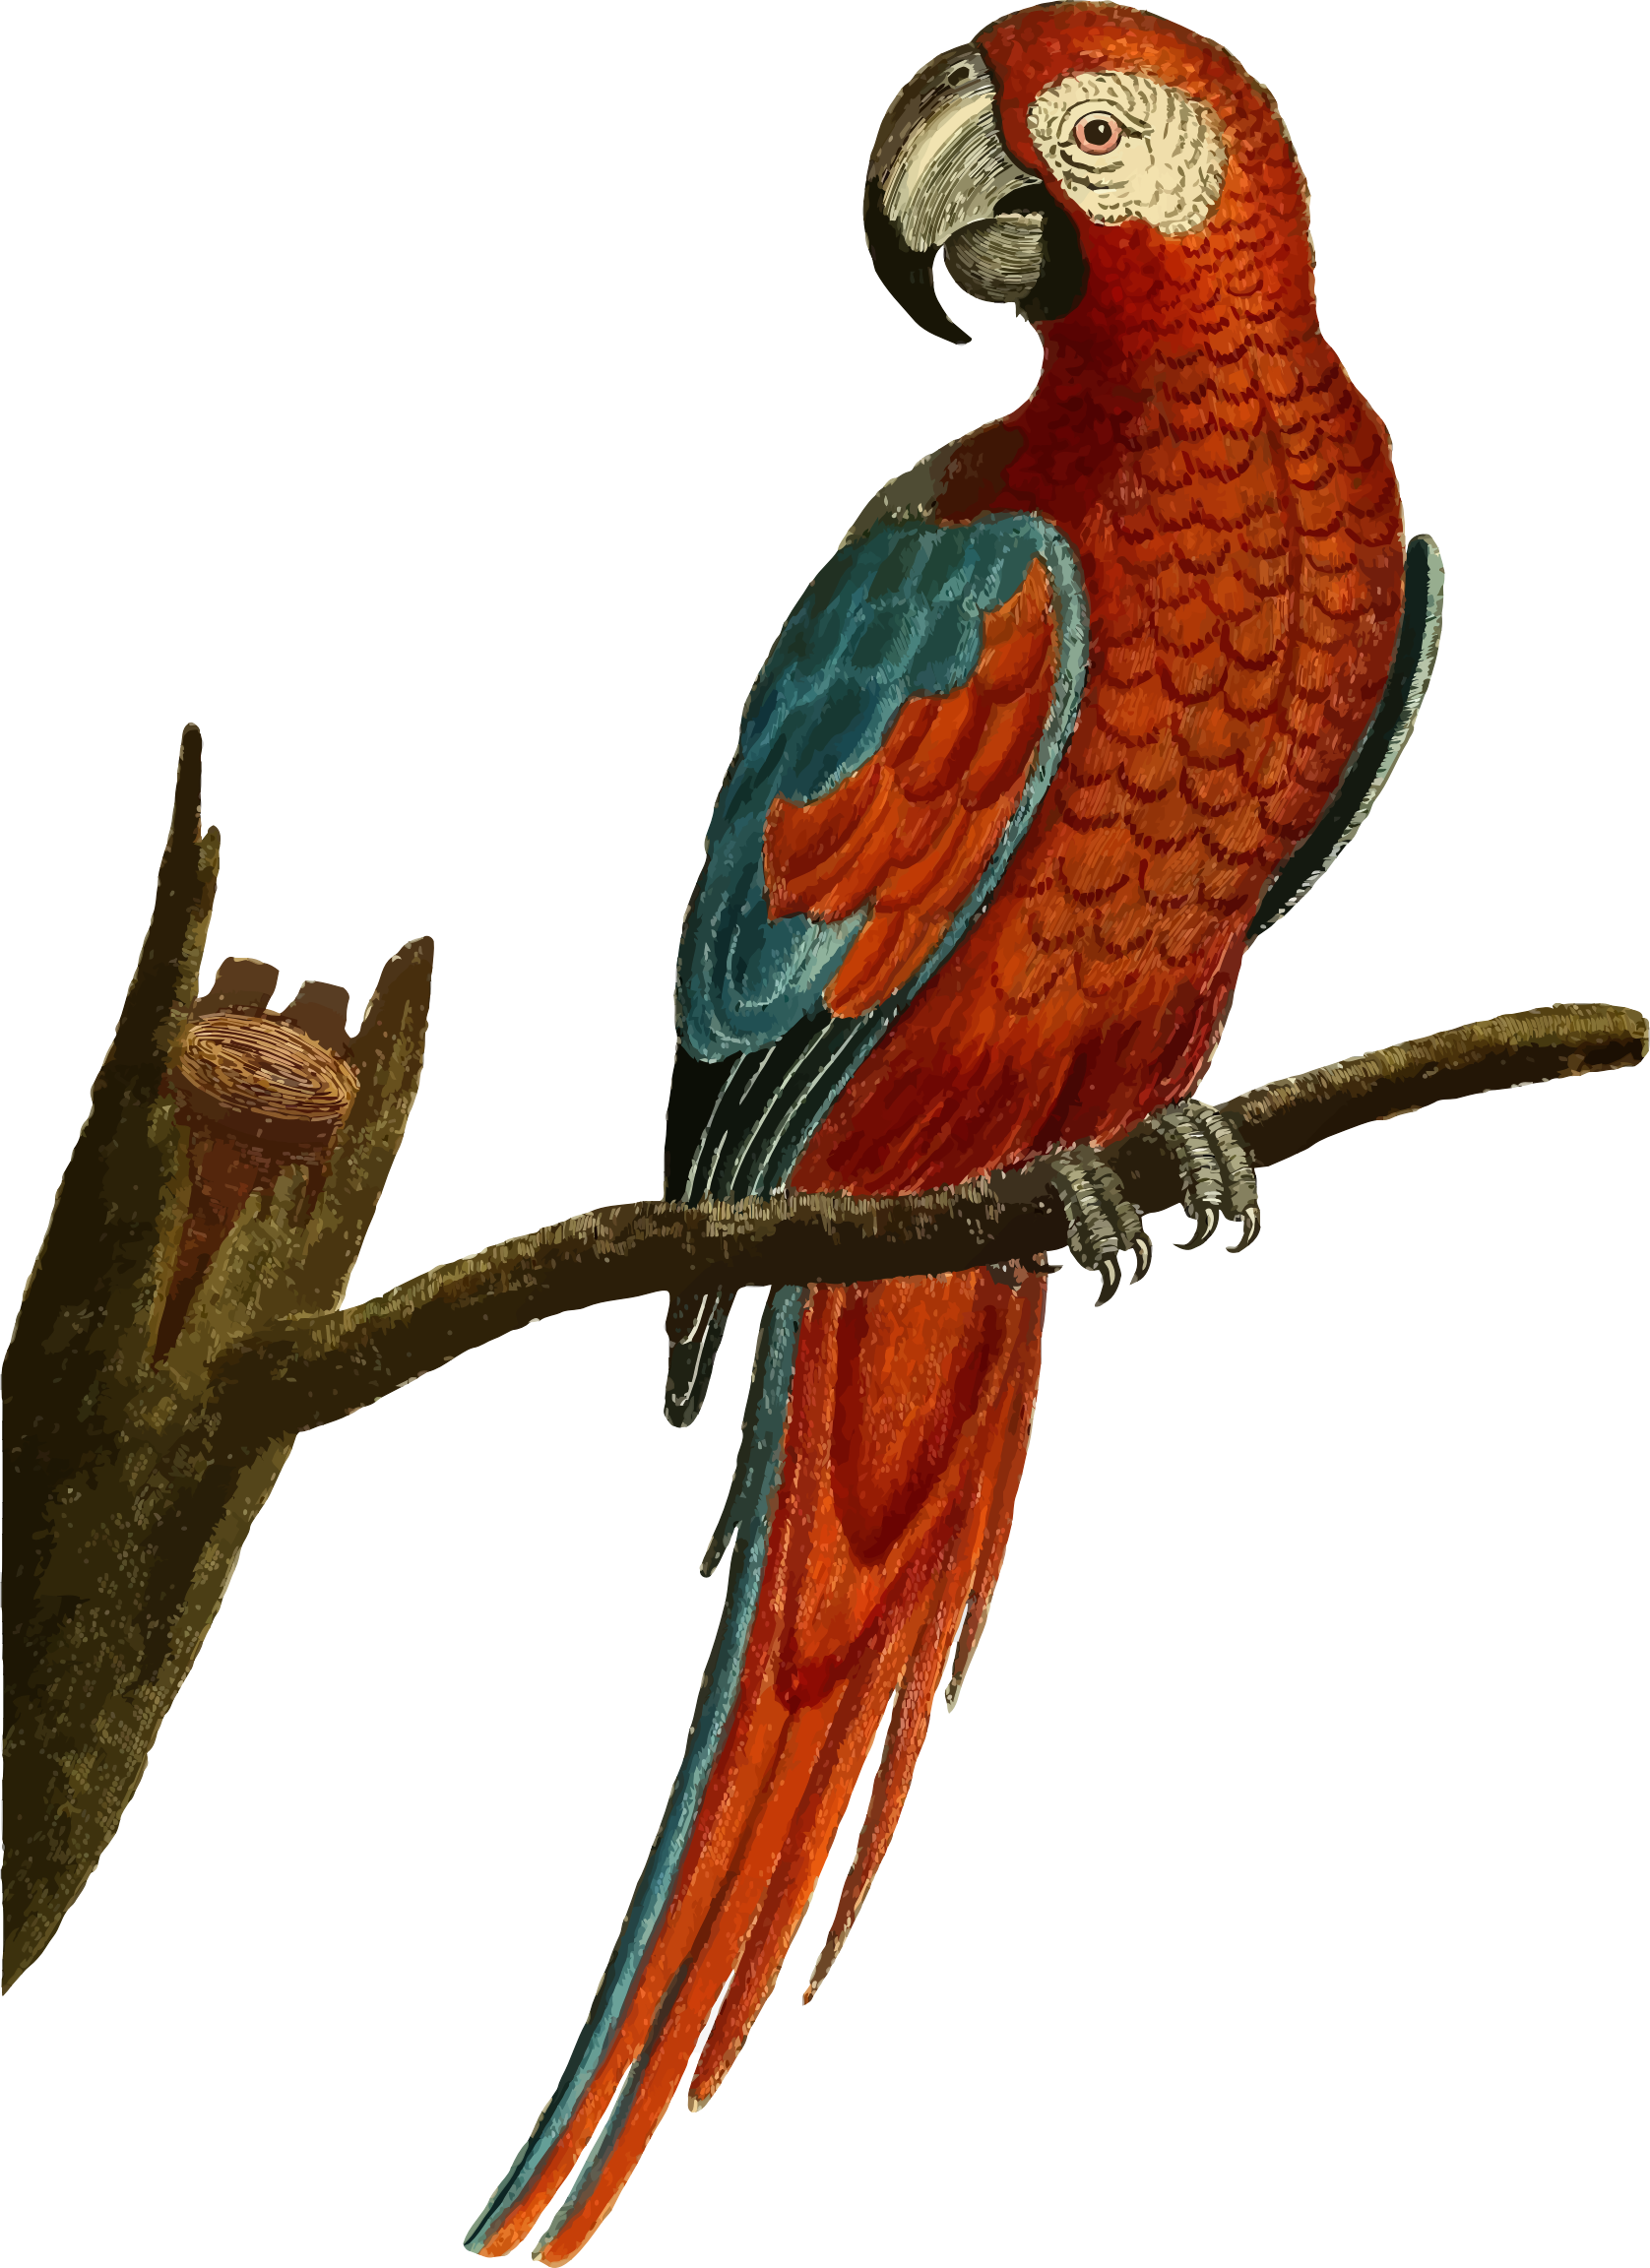 Vintage Deep Red Parrot Illustration by GDJ